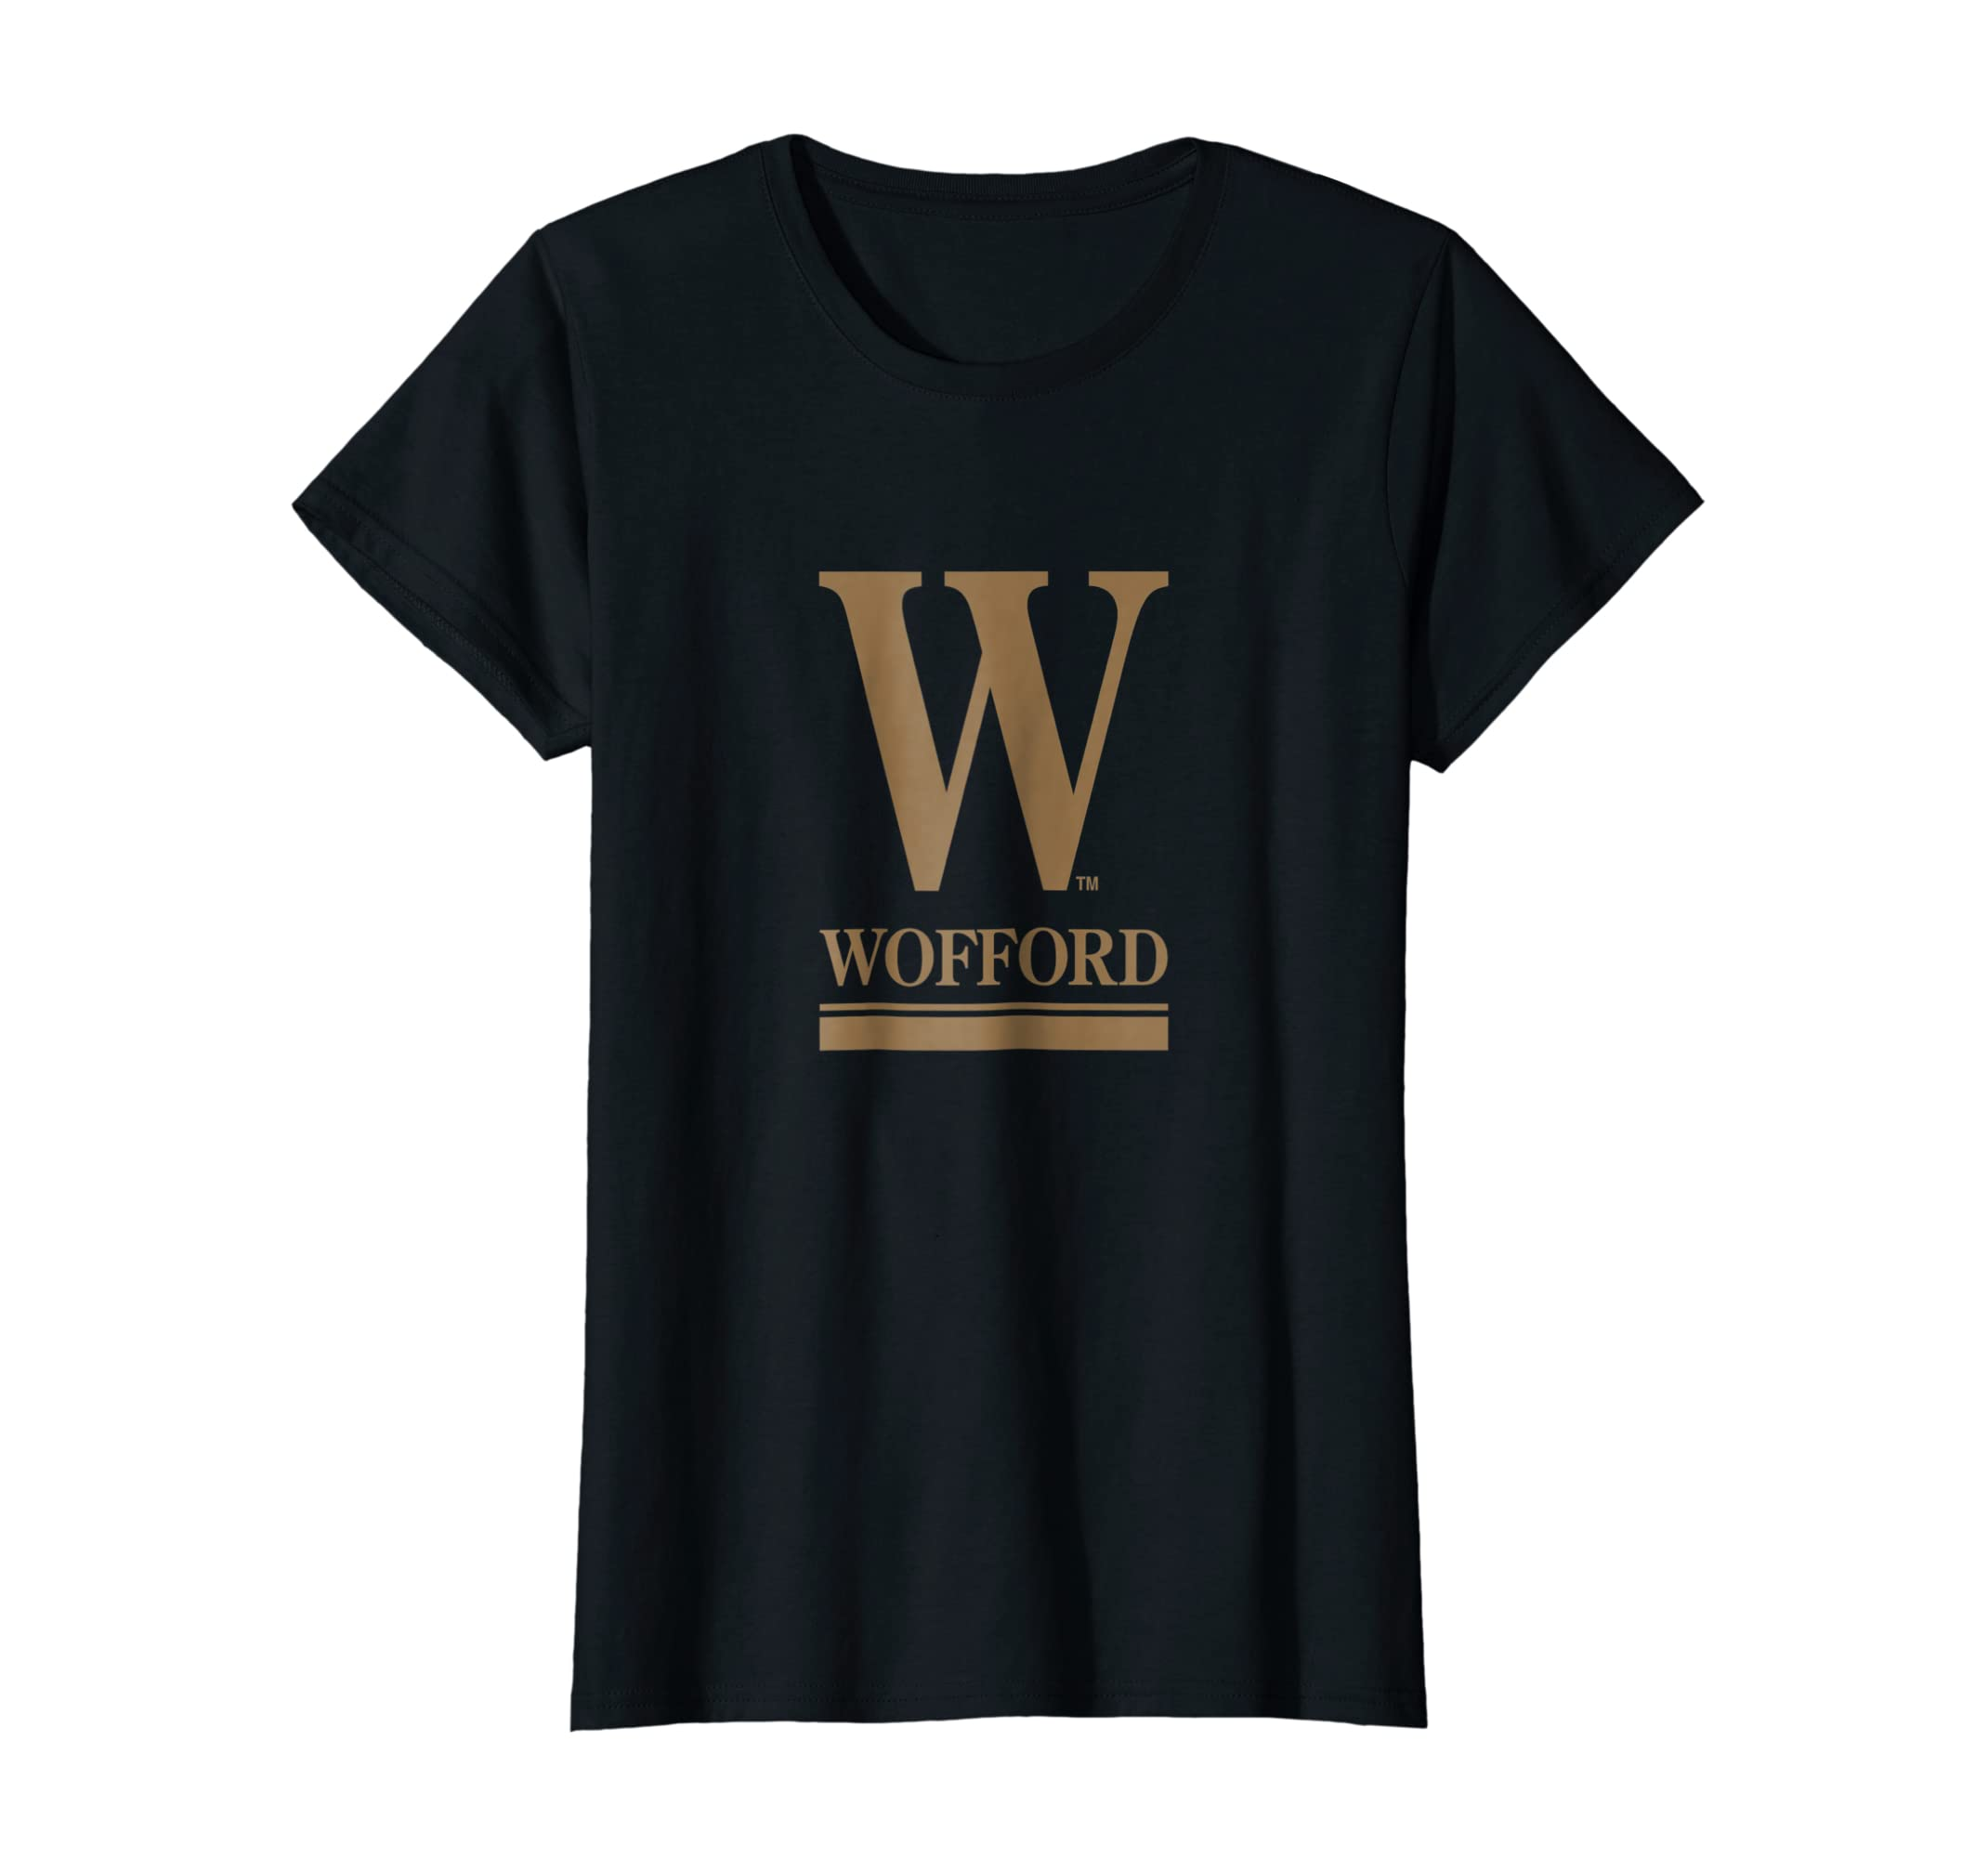 reputable site 56254 6beba Amazon.com: Wofford College Terriers T Shirt: Clothing